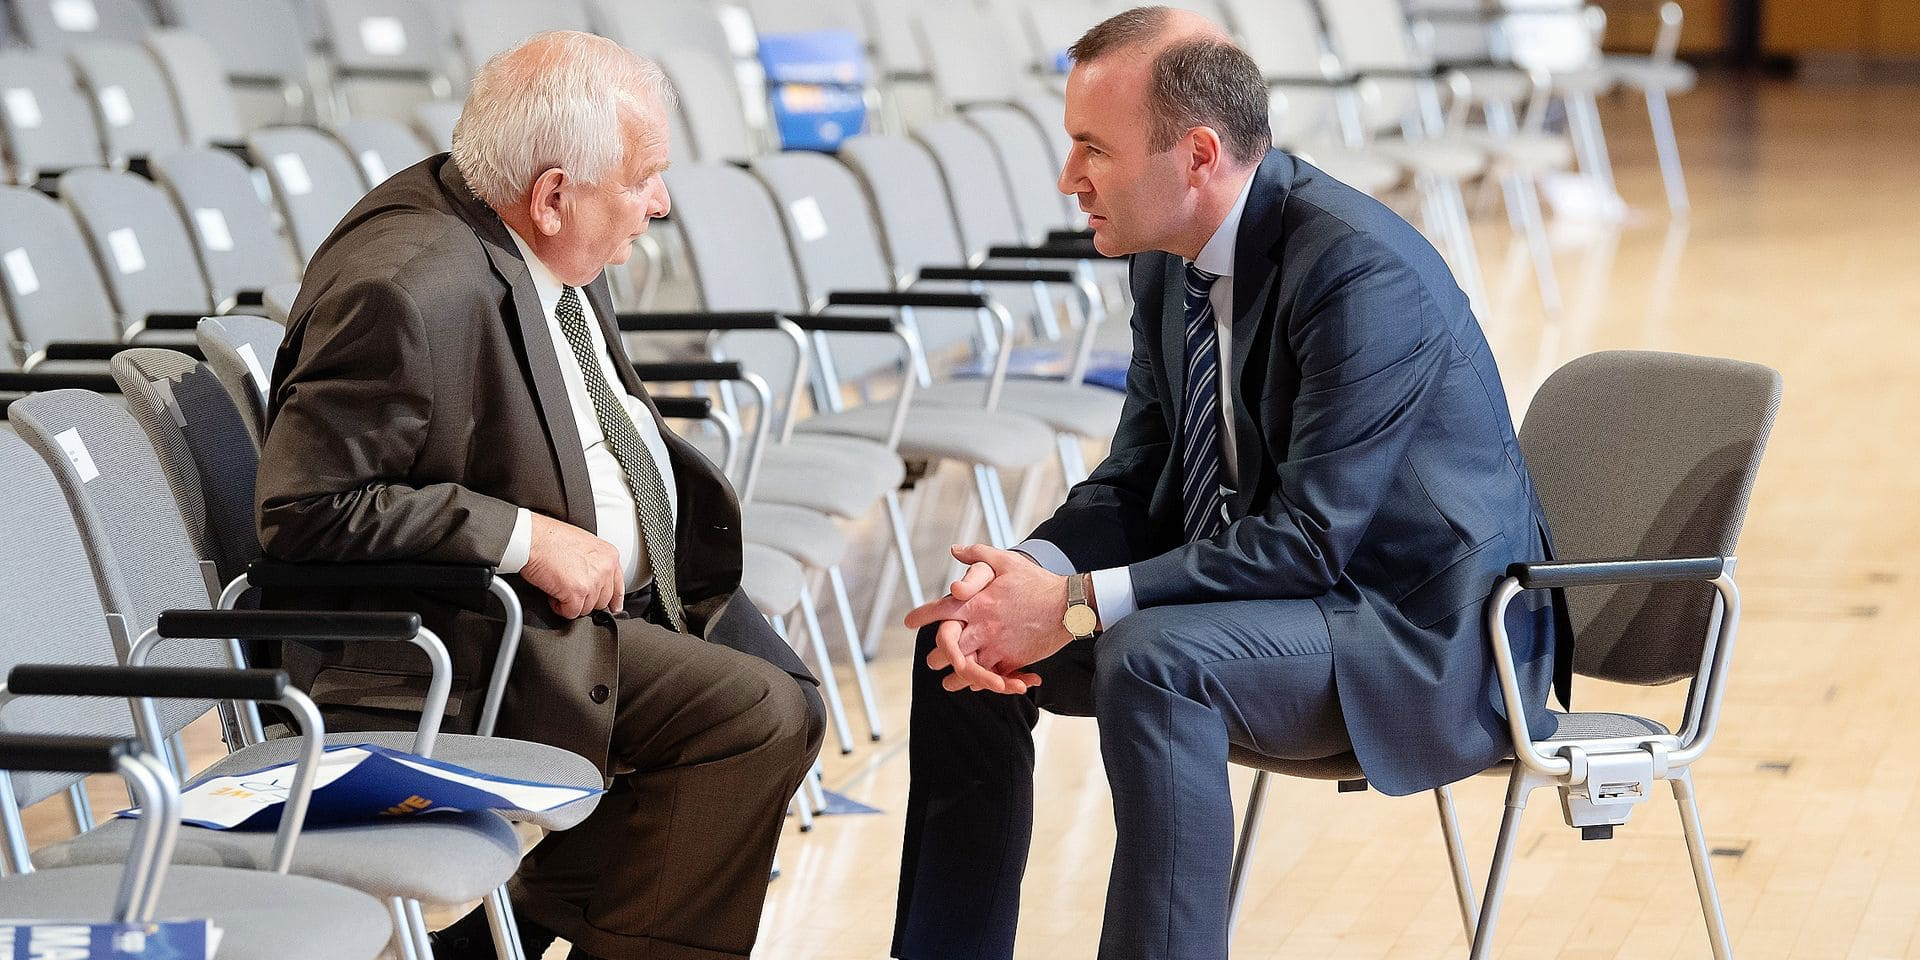 24 May 2019, Bavaria, Munich: Manfred Weber (R), the European People's Party (EPP) top candidate for the 2019 European elections, speaks with EPP president Joseph Daul after the joint final rally of the EPP, the Christian Democratic Union (CDU) and the Christian Social Union (CSU) on the occasion of the European elections. Photo: Sven Hoppe/dpa